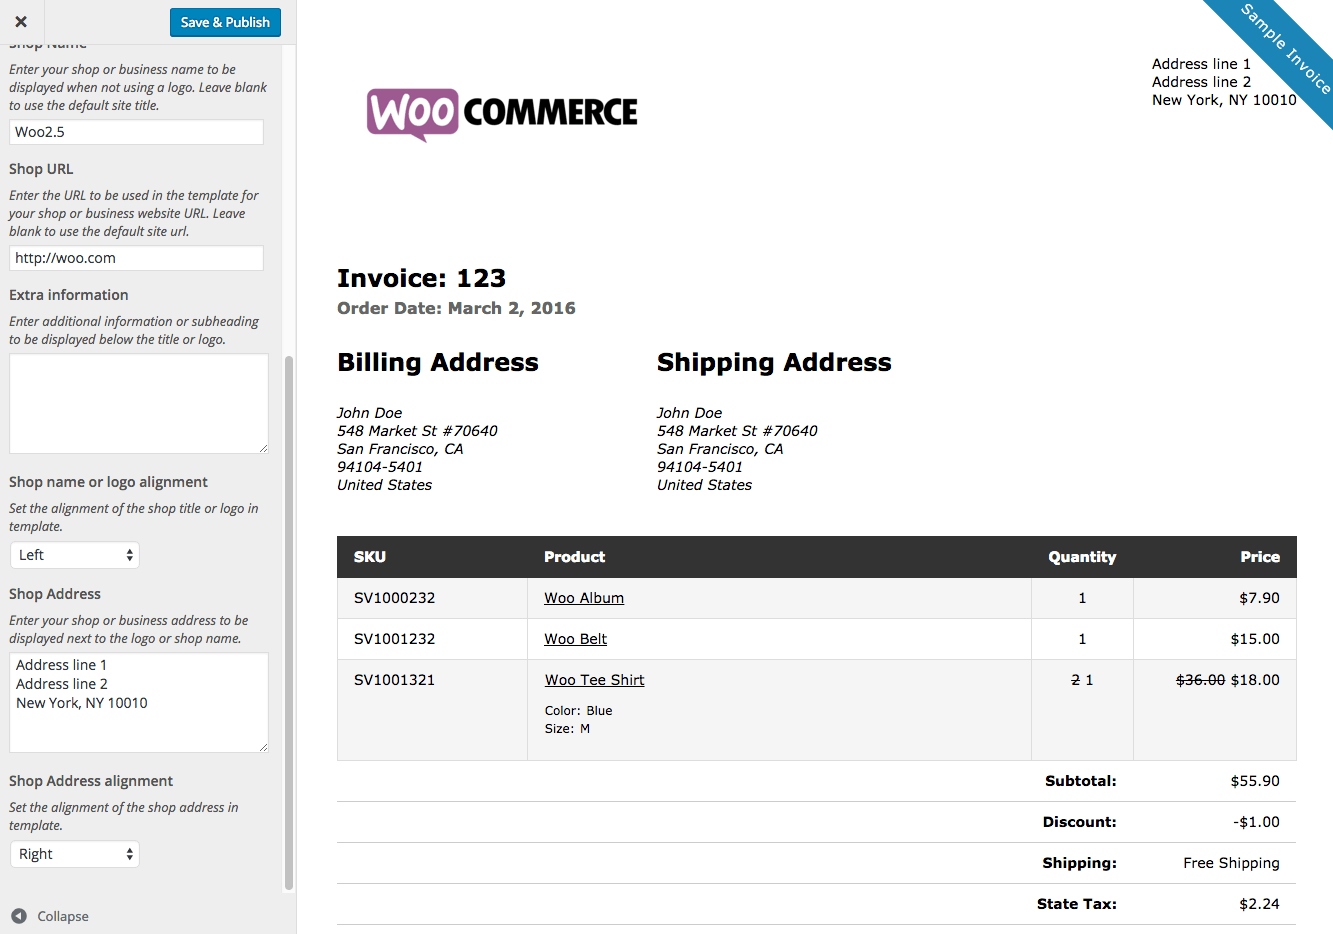 Breakupus  Picturesque Woocommerce Print Invoices Amp Packing Lists  Woocommerce Docs With Foxy Woocommerce Print Invoices  Packing Lists Customizer With Cool Receipt Paper For Star Tsp Also Free Receipt Template Pdf In Addition Dod Lost Receipt Form And Rent Receipts Printable As Well As Statement Of Receipt Additionally Word Document Receipt Template From Docswoocommercecom With Breakupus  Foxy Woocommerce Print Invoices Amp Packing Lists  Woocommerce Docs With Cool Woocommerce Print Invoices  Packing Lists Customizer And Picturesque Receipt Paper For Star Tsp Also Free Receipt Template Pdf In Addition Dod Lost Receipt Form From Docswoocommercecom